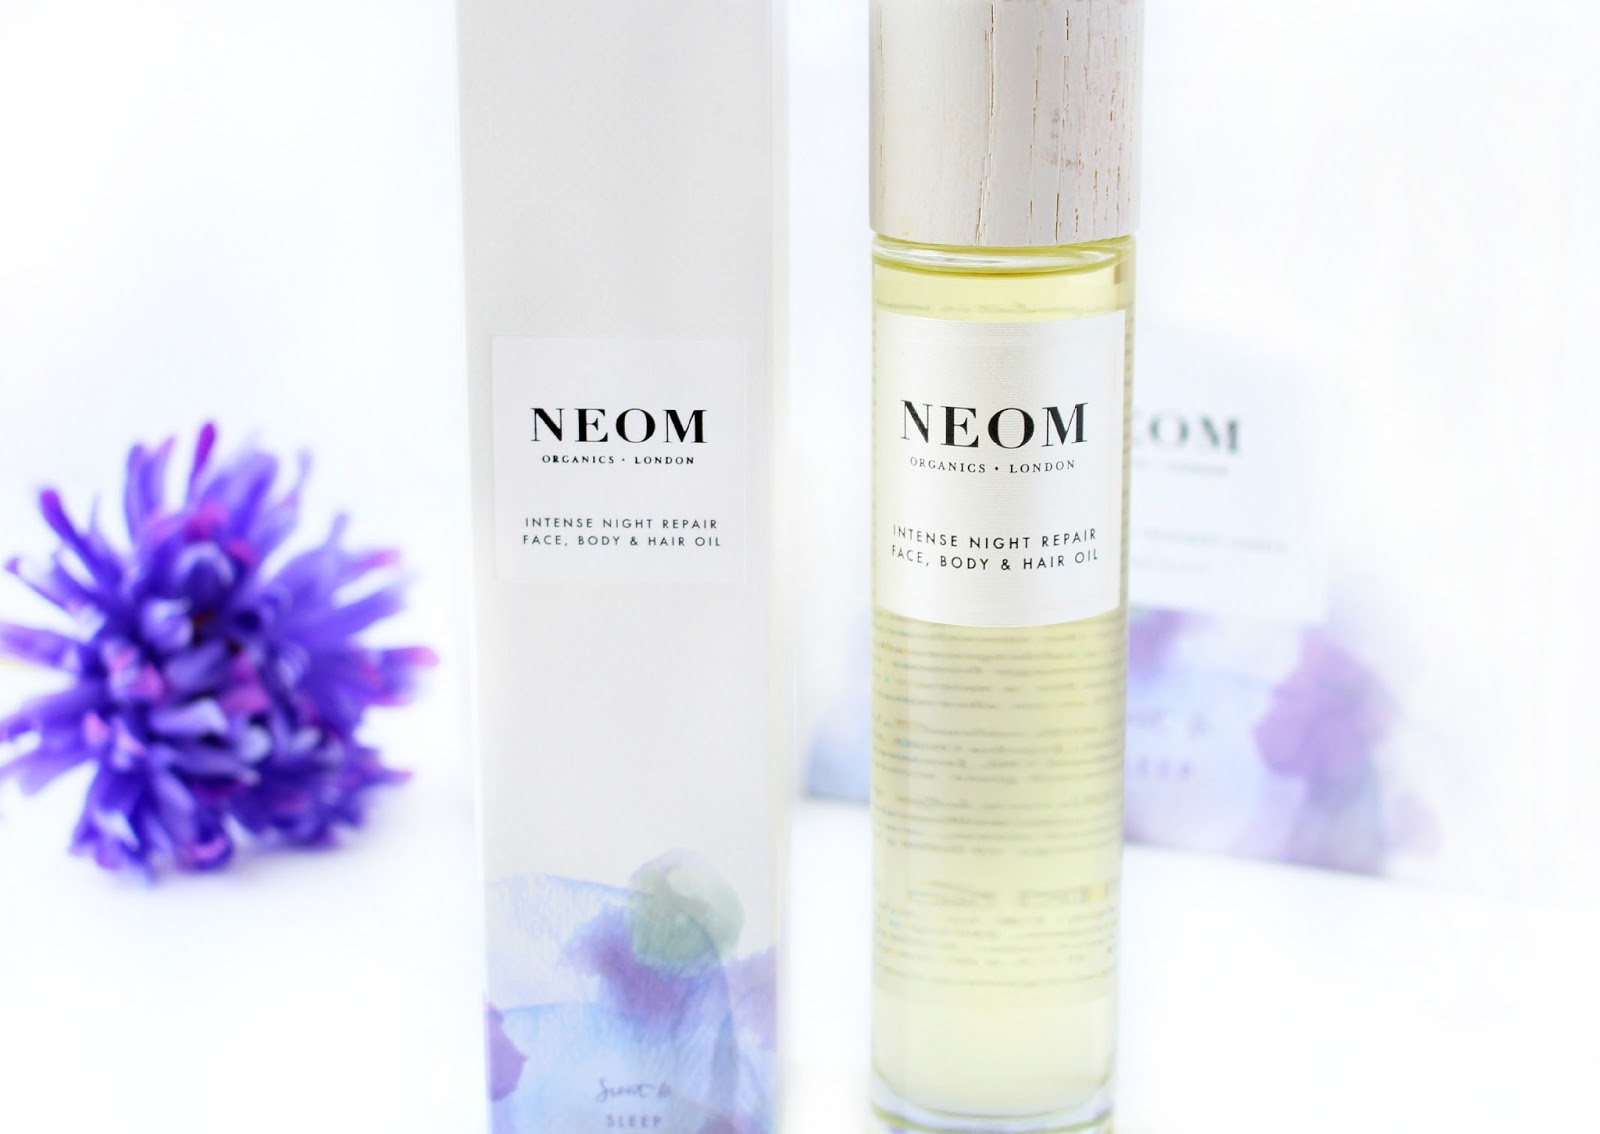 NEOM Intense Night Repair Face, Body & Hair Oil Review